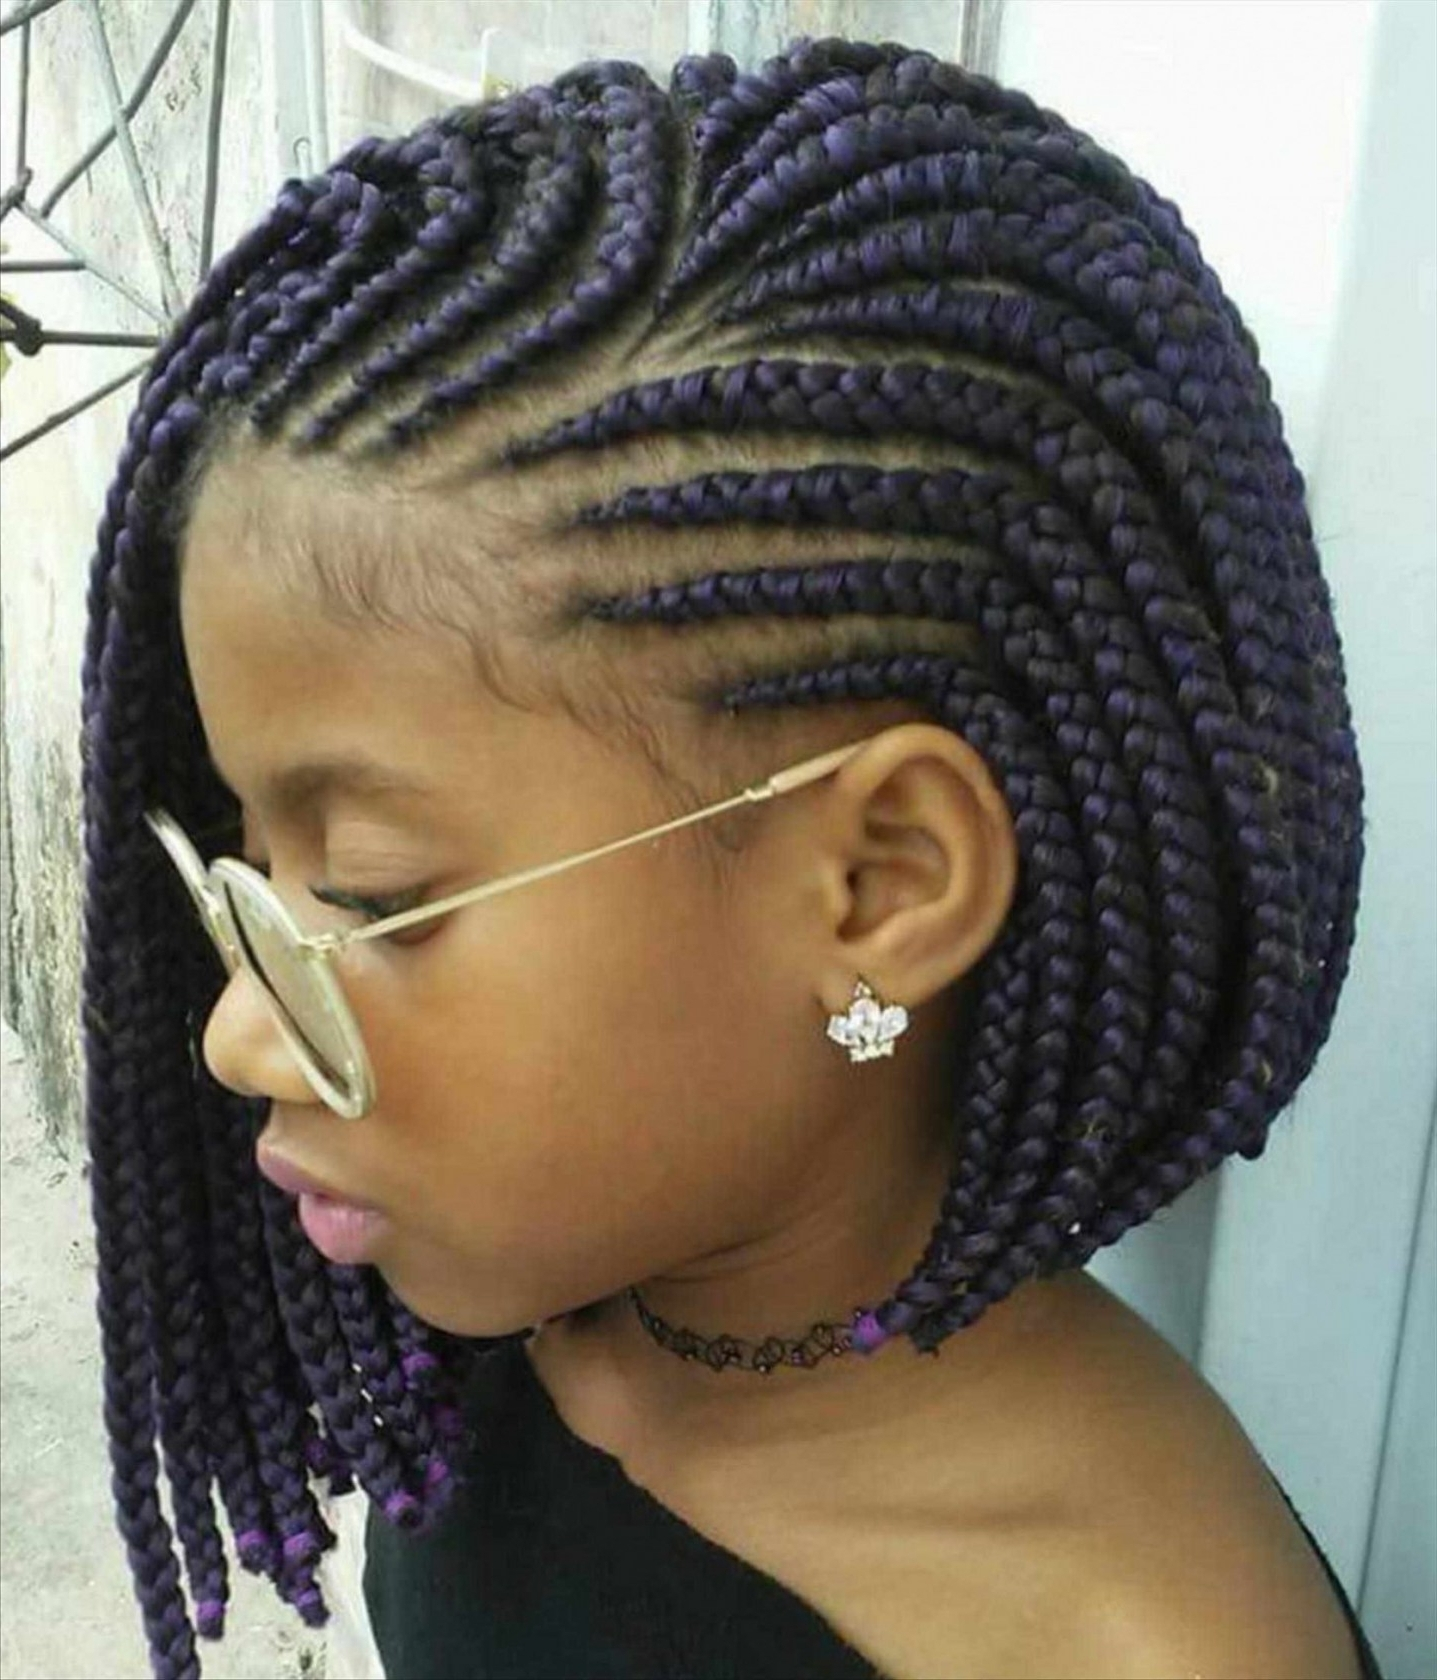 Inspiring African Black Kids Braids Hairstyles Braided For Pict Throughout Current Cornrows African Hairstyles (View 11 of 15)